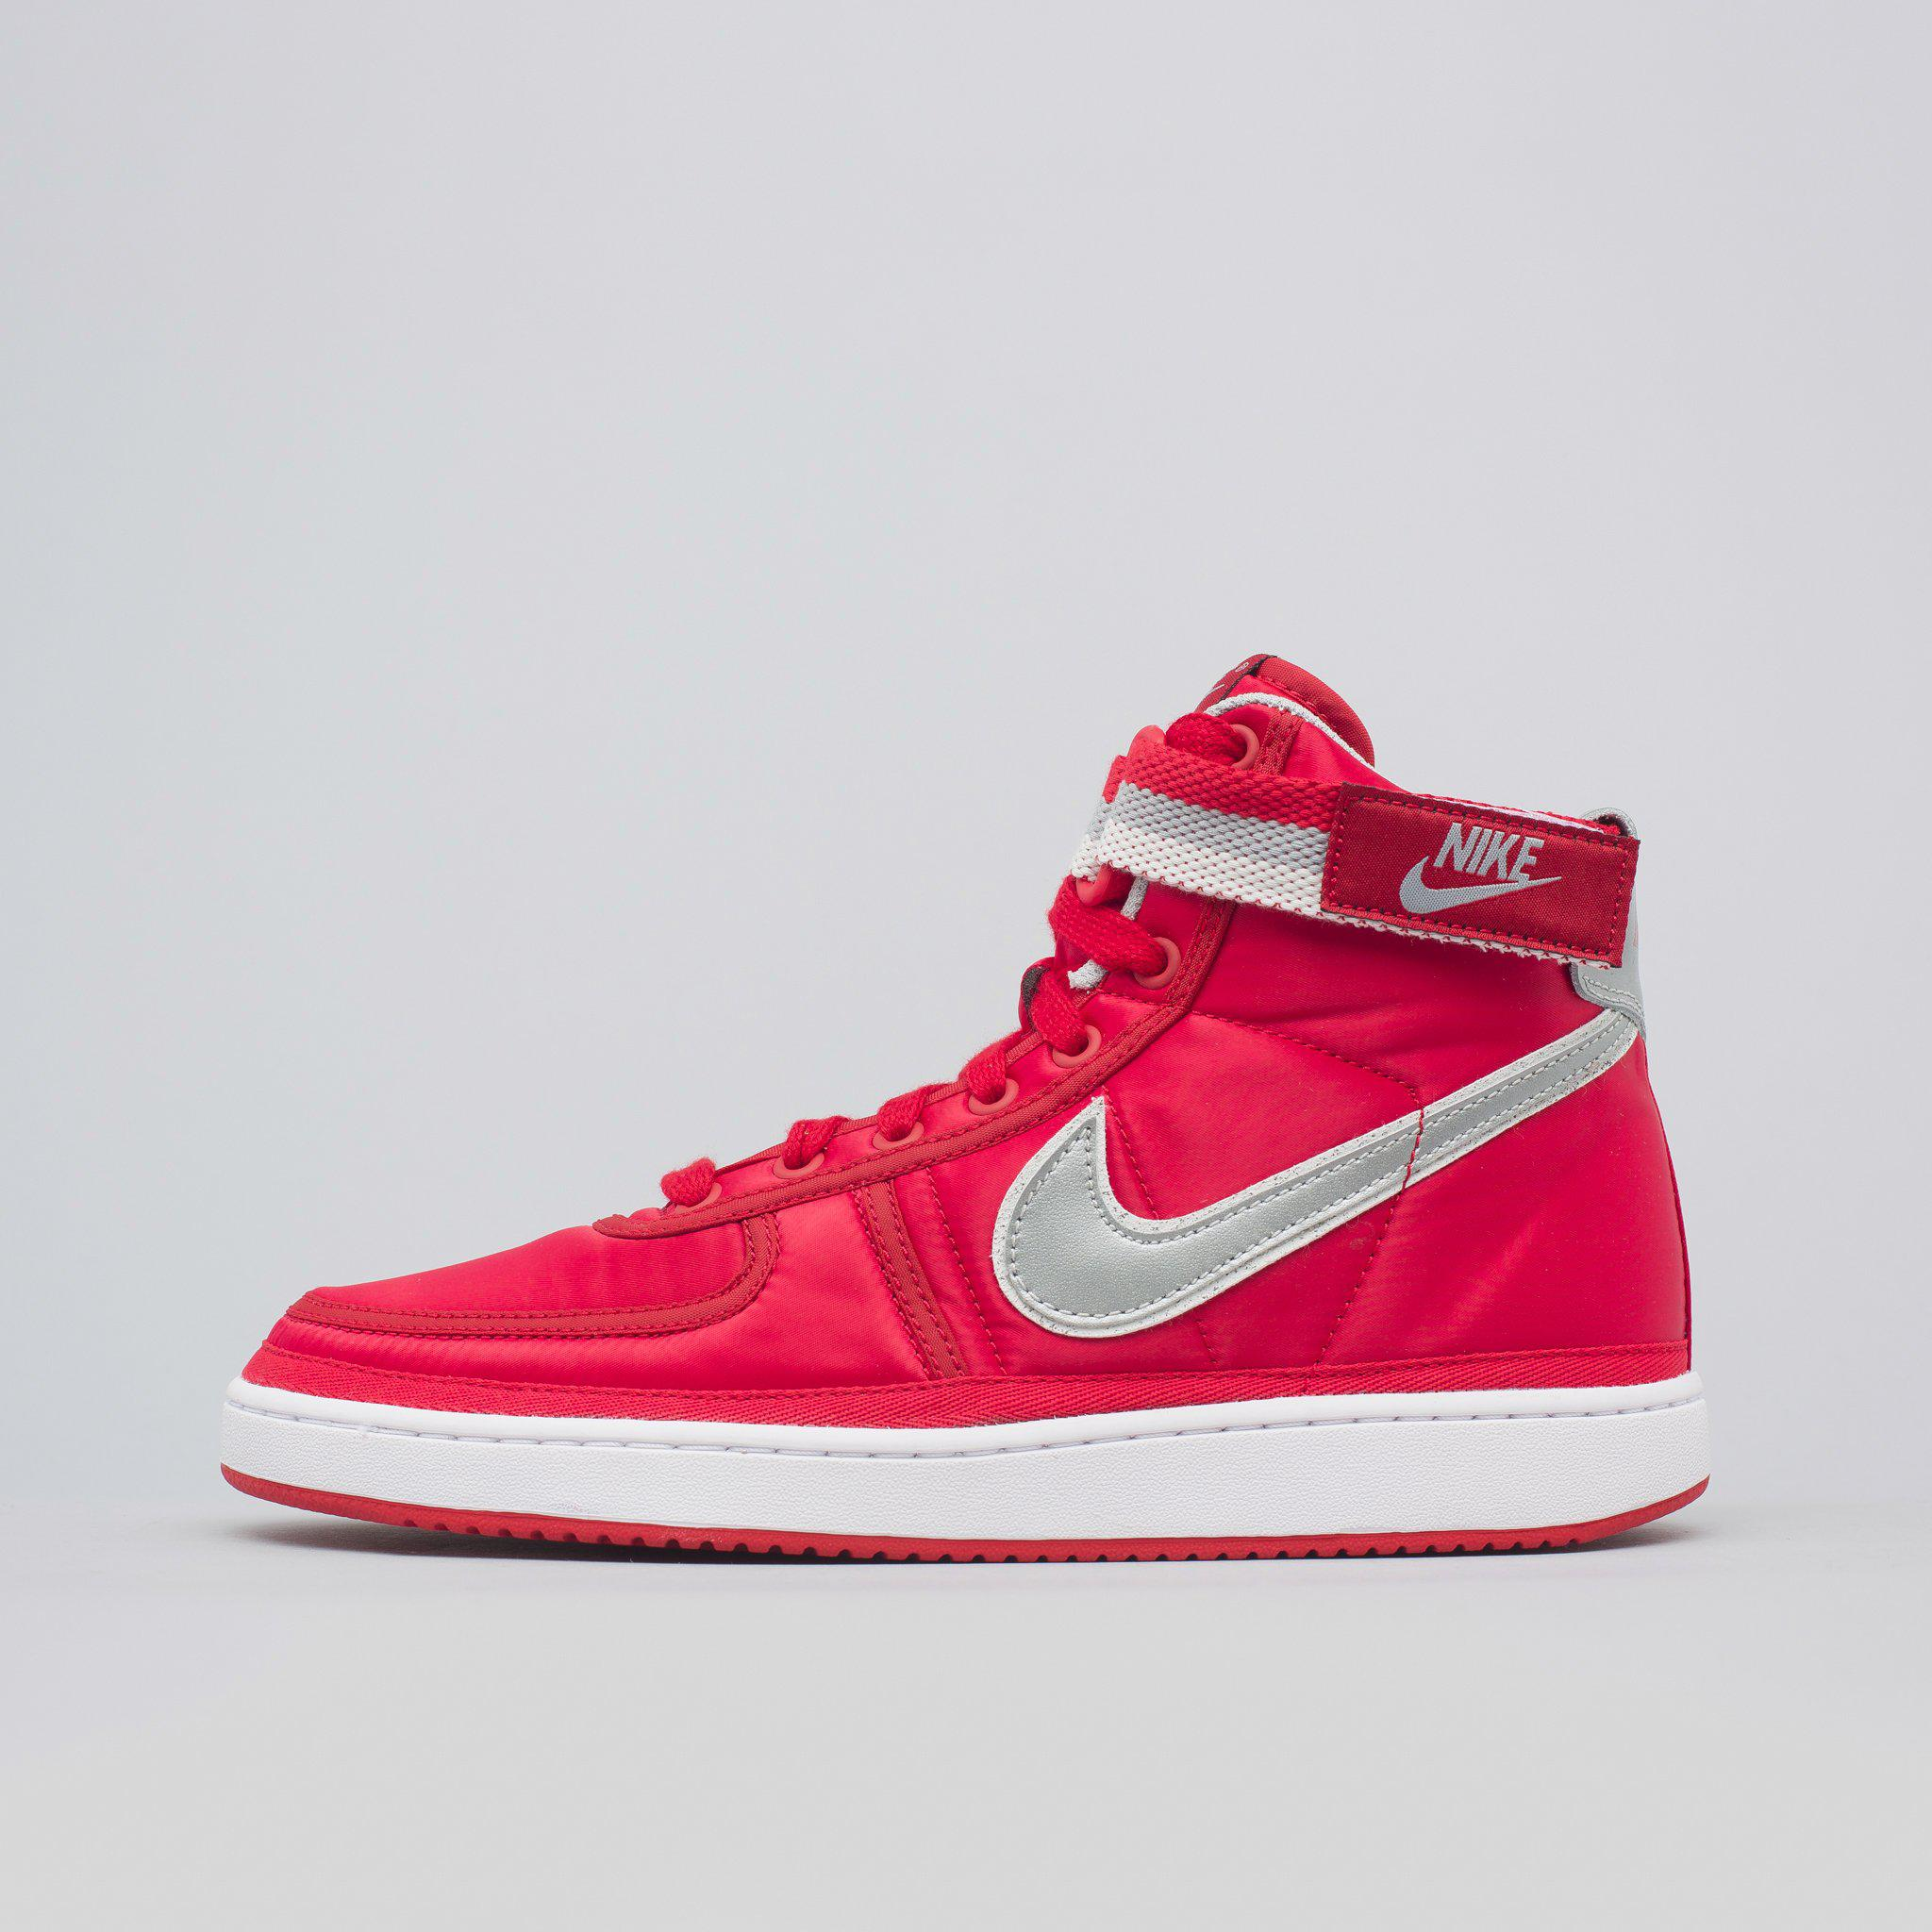 e439063cd45e Lyst - Nike Vandal High Supreme In Red in Red for Men